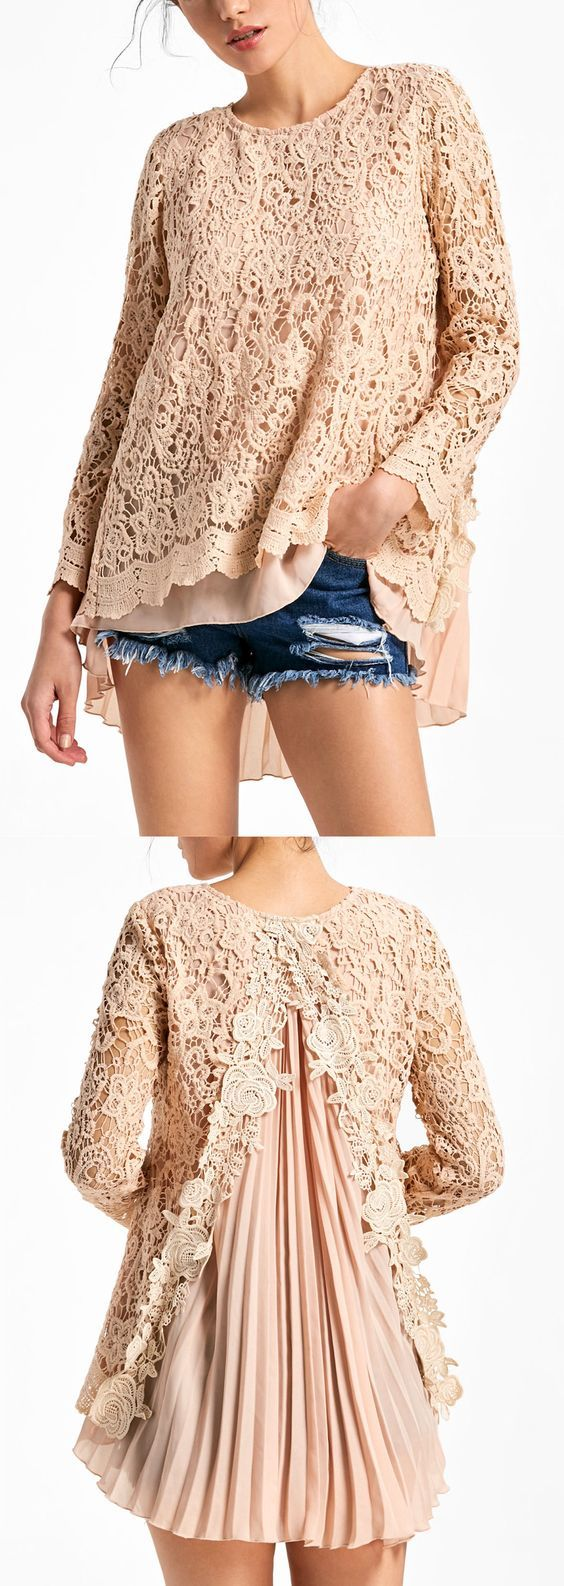 Long Sleeve Pleated High Low Lace Blouse